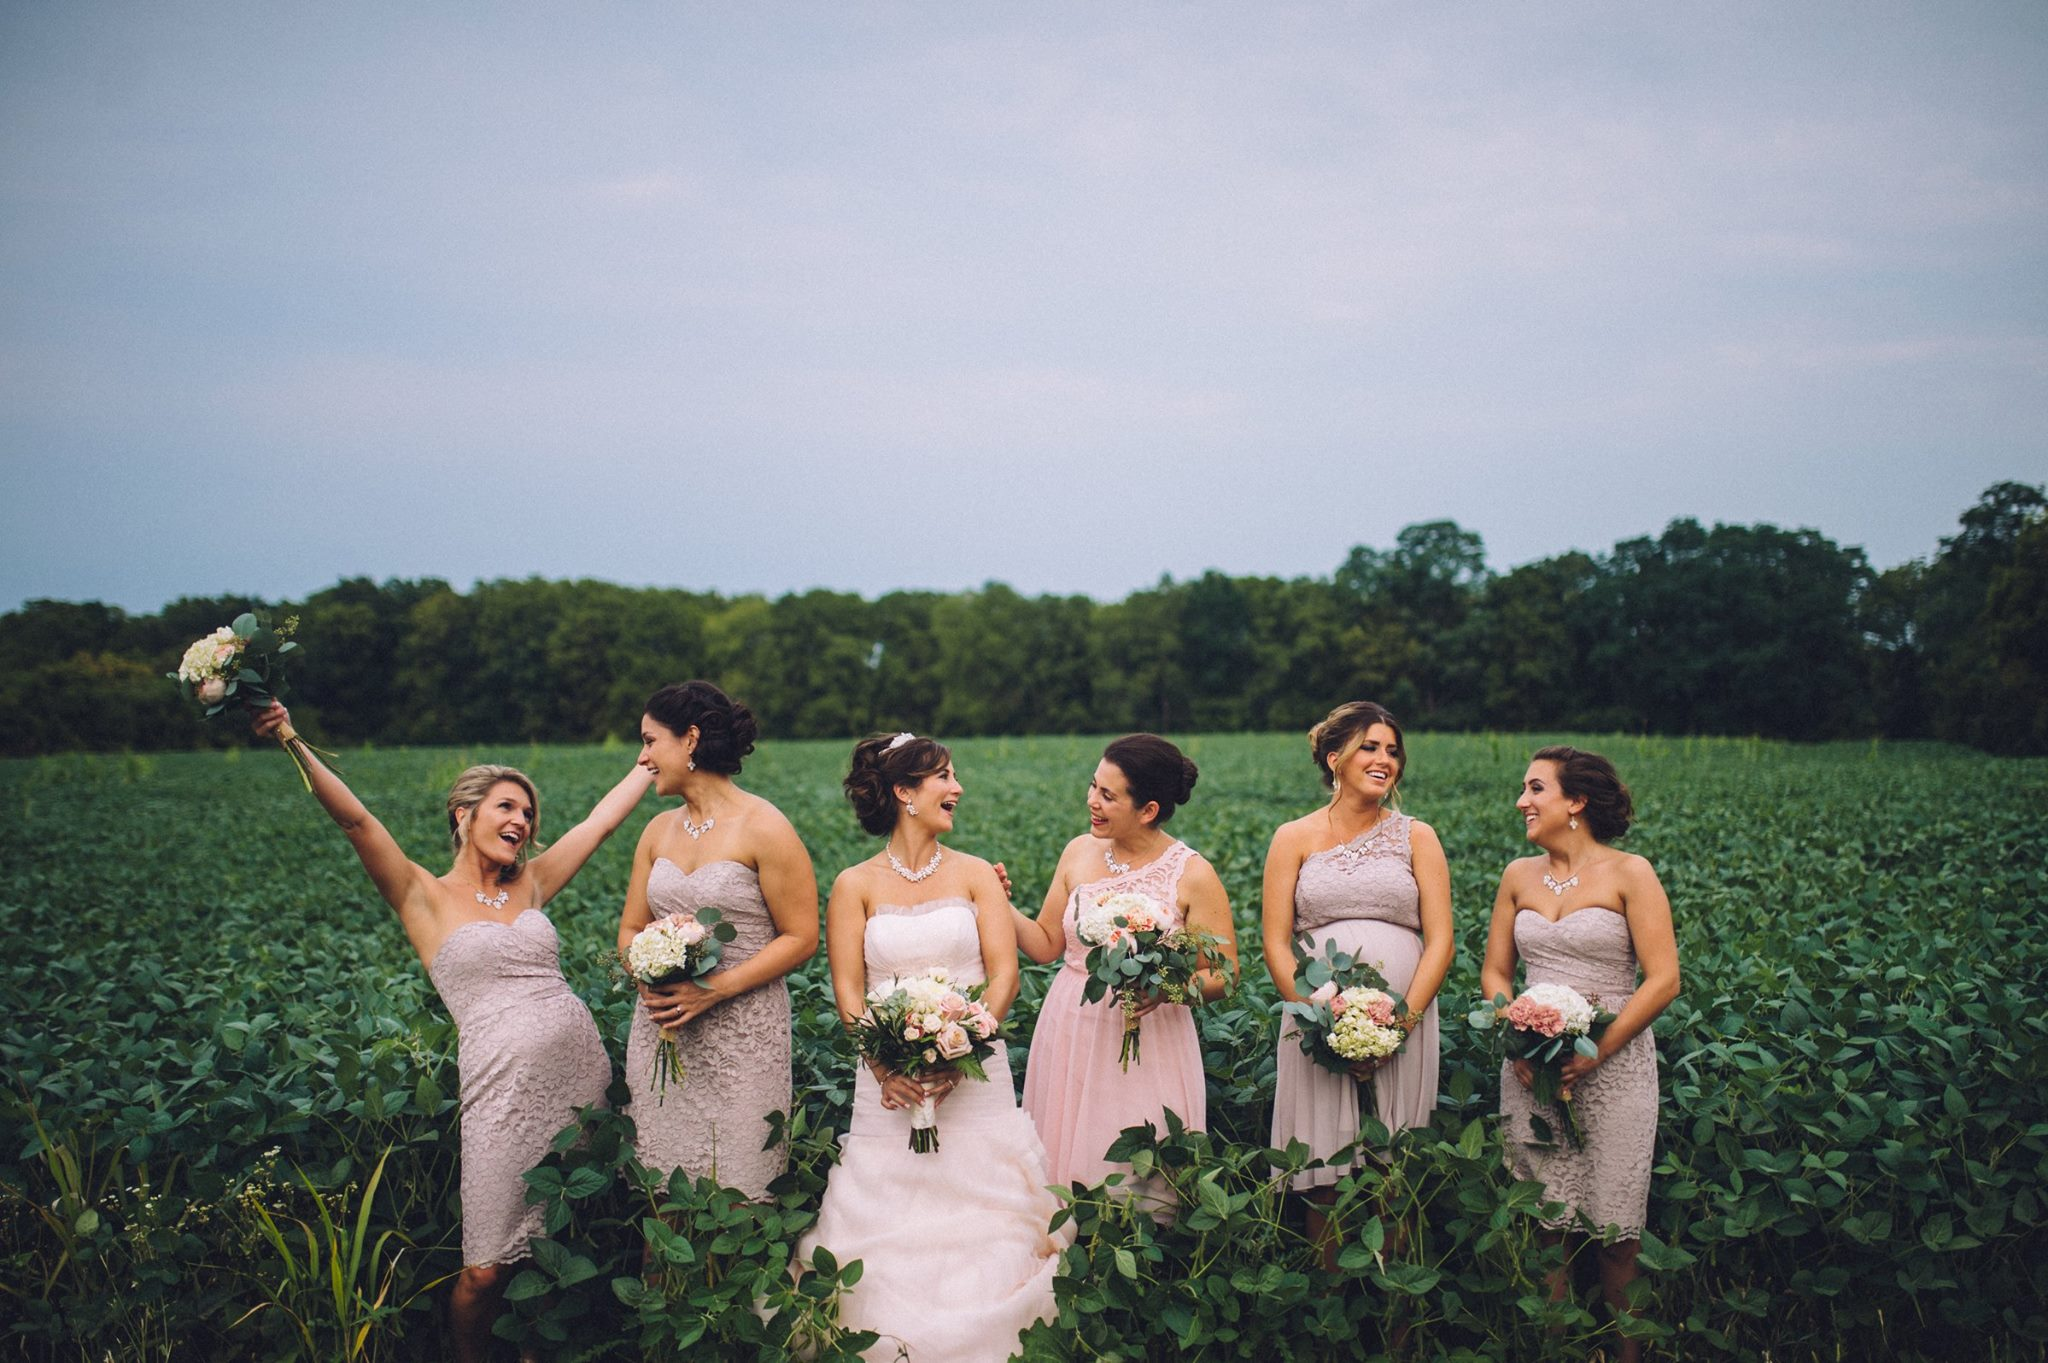 Jerris Wedding Barn Field photo.jpg